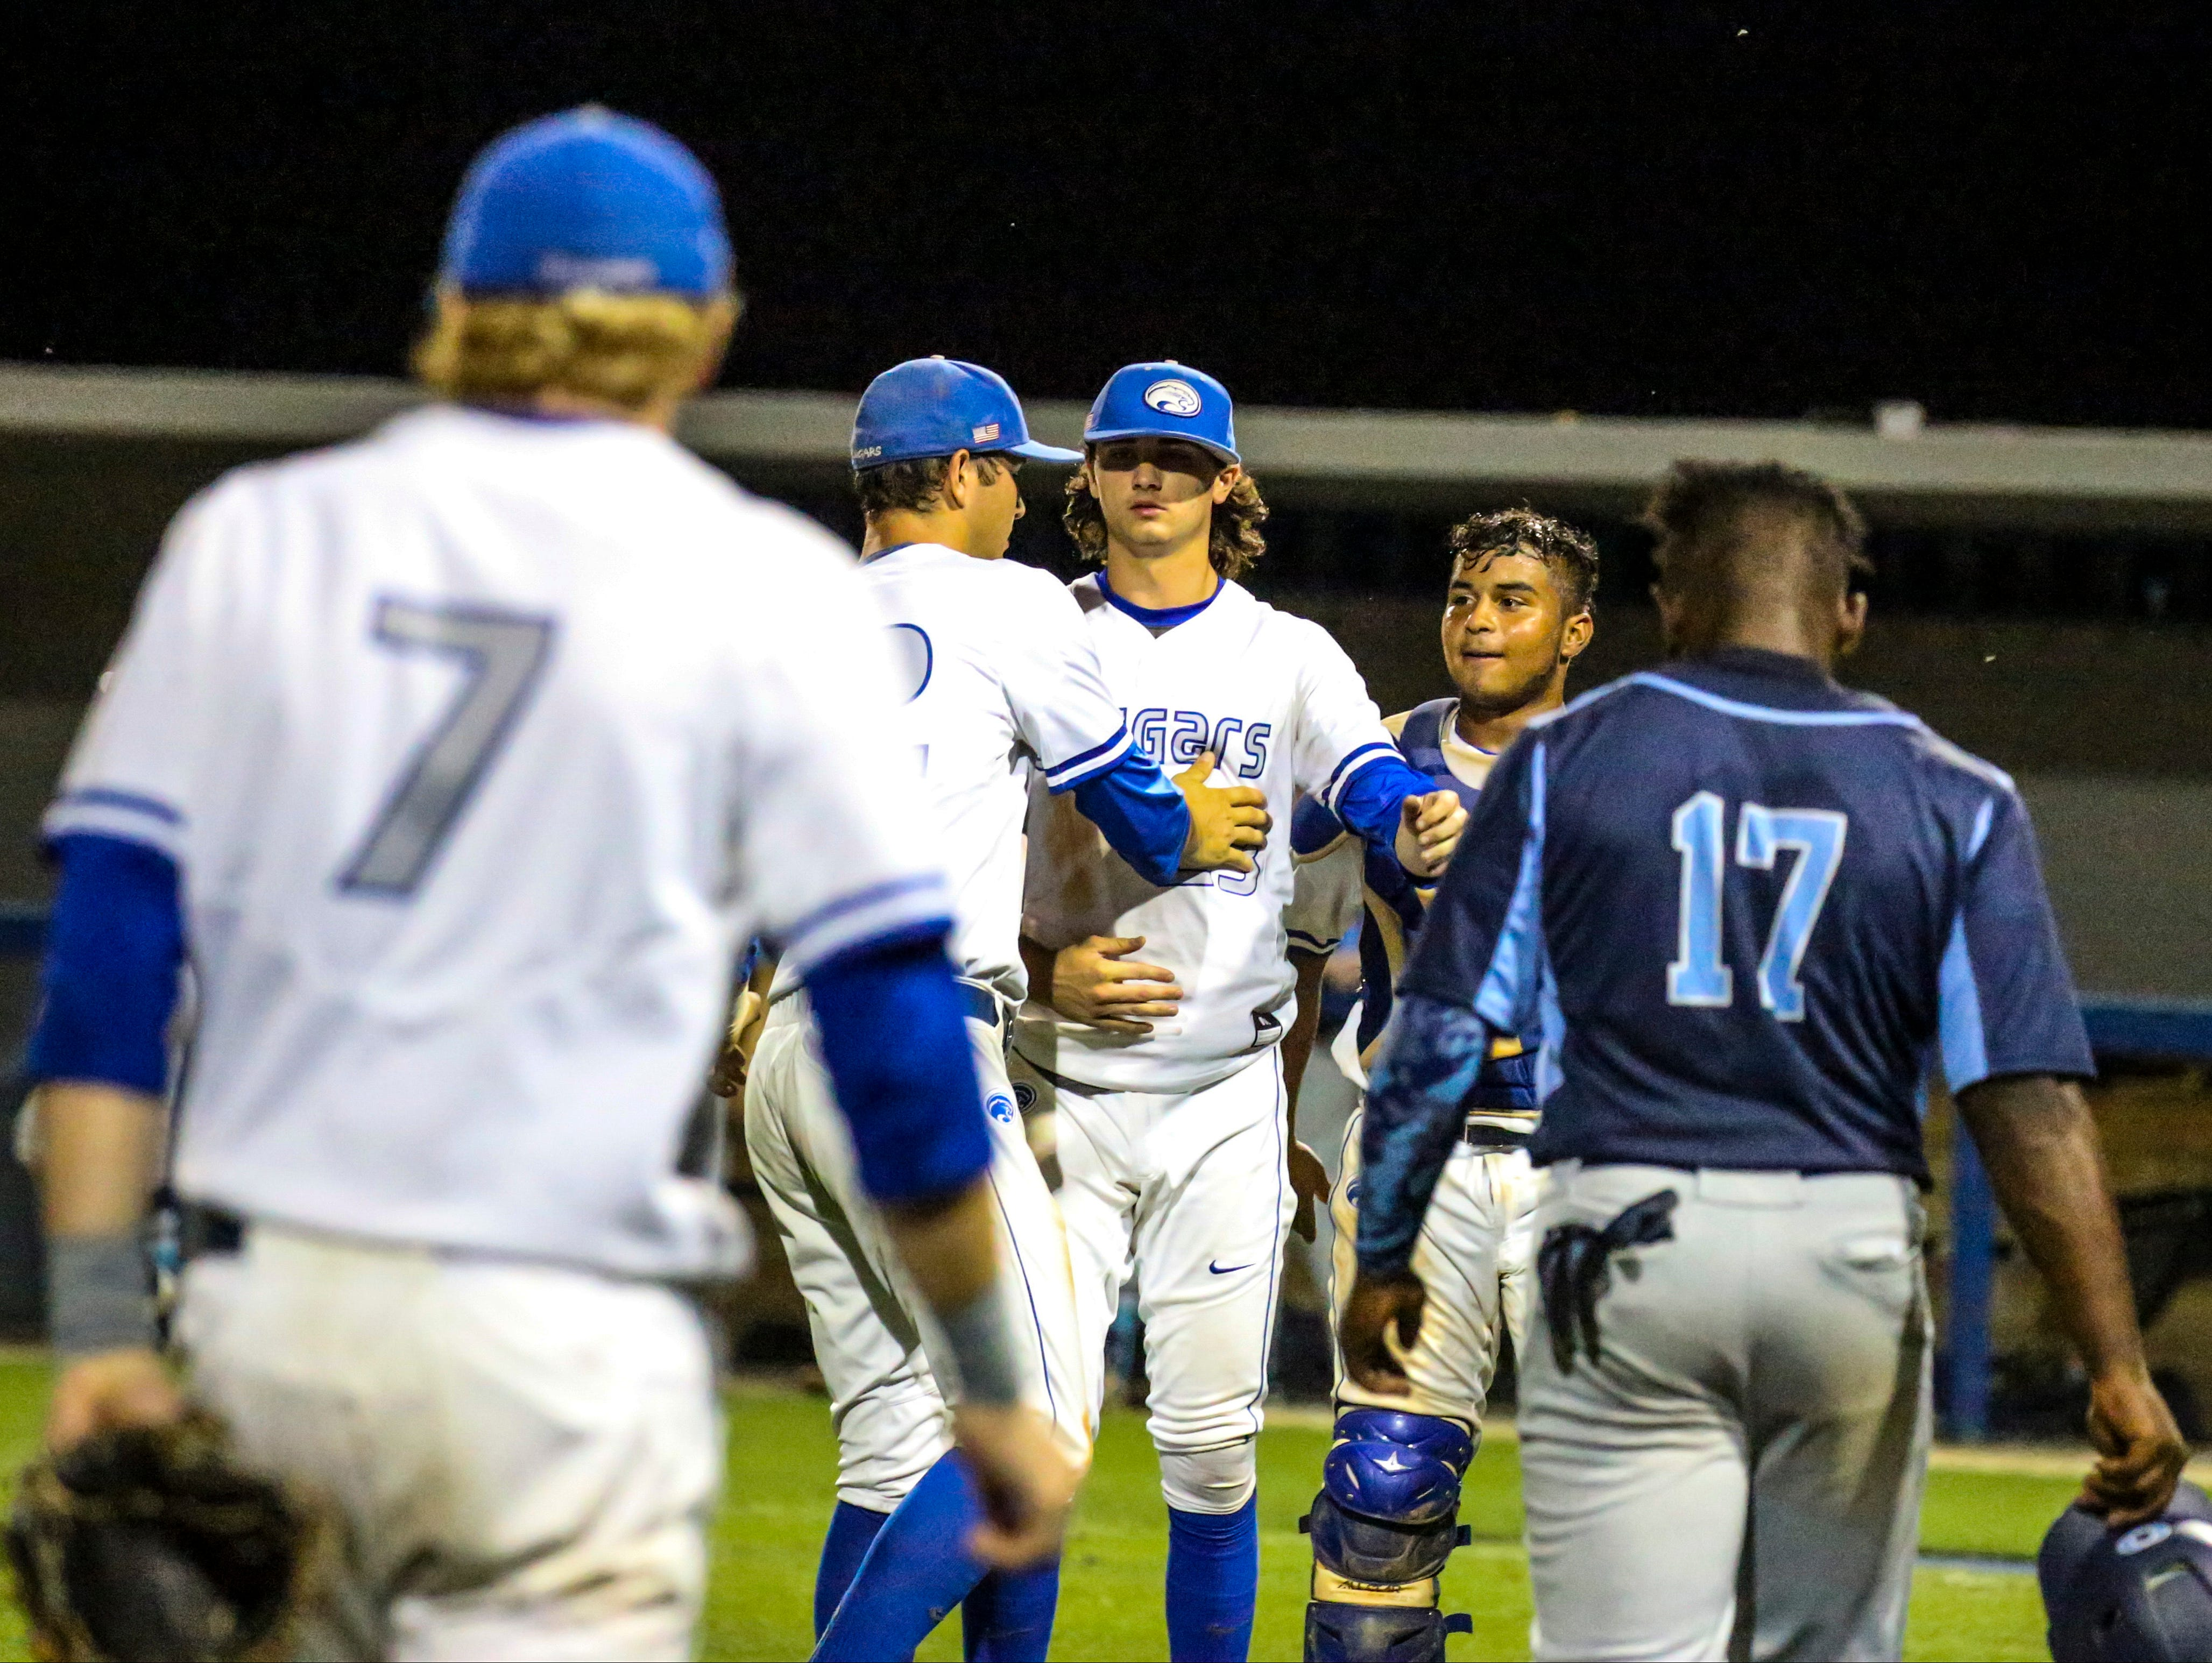 Region 3A-3 semifinal baseball between Canterbury and Sarasota Out of Door Academy. Canterbury won 2-0 to advance and their team celebrates their win by rallying around starting pitcher, Sam Keating.